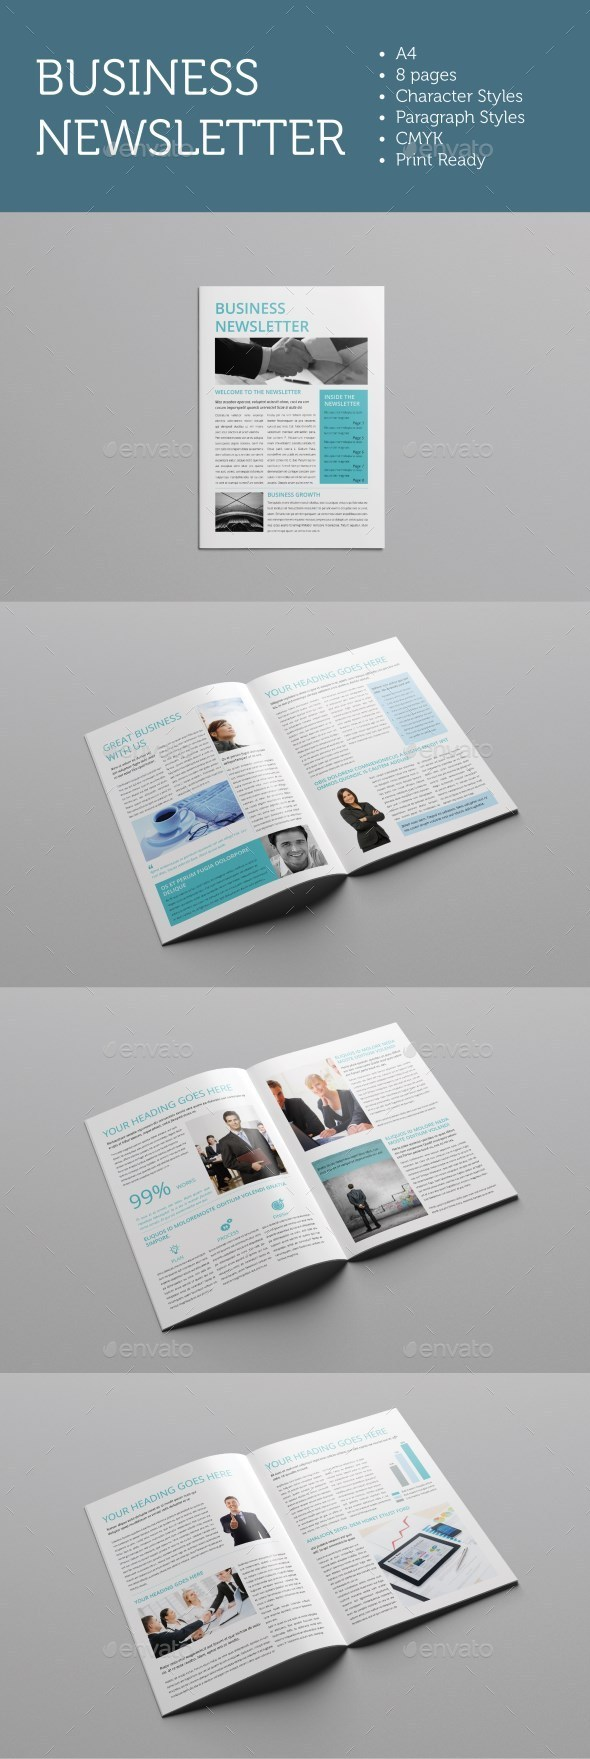 GraphicRiver Business Newsletter 9694132